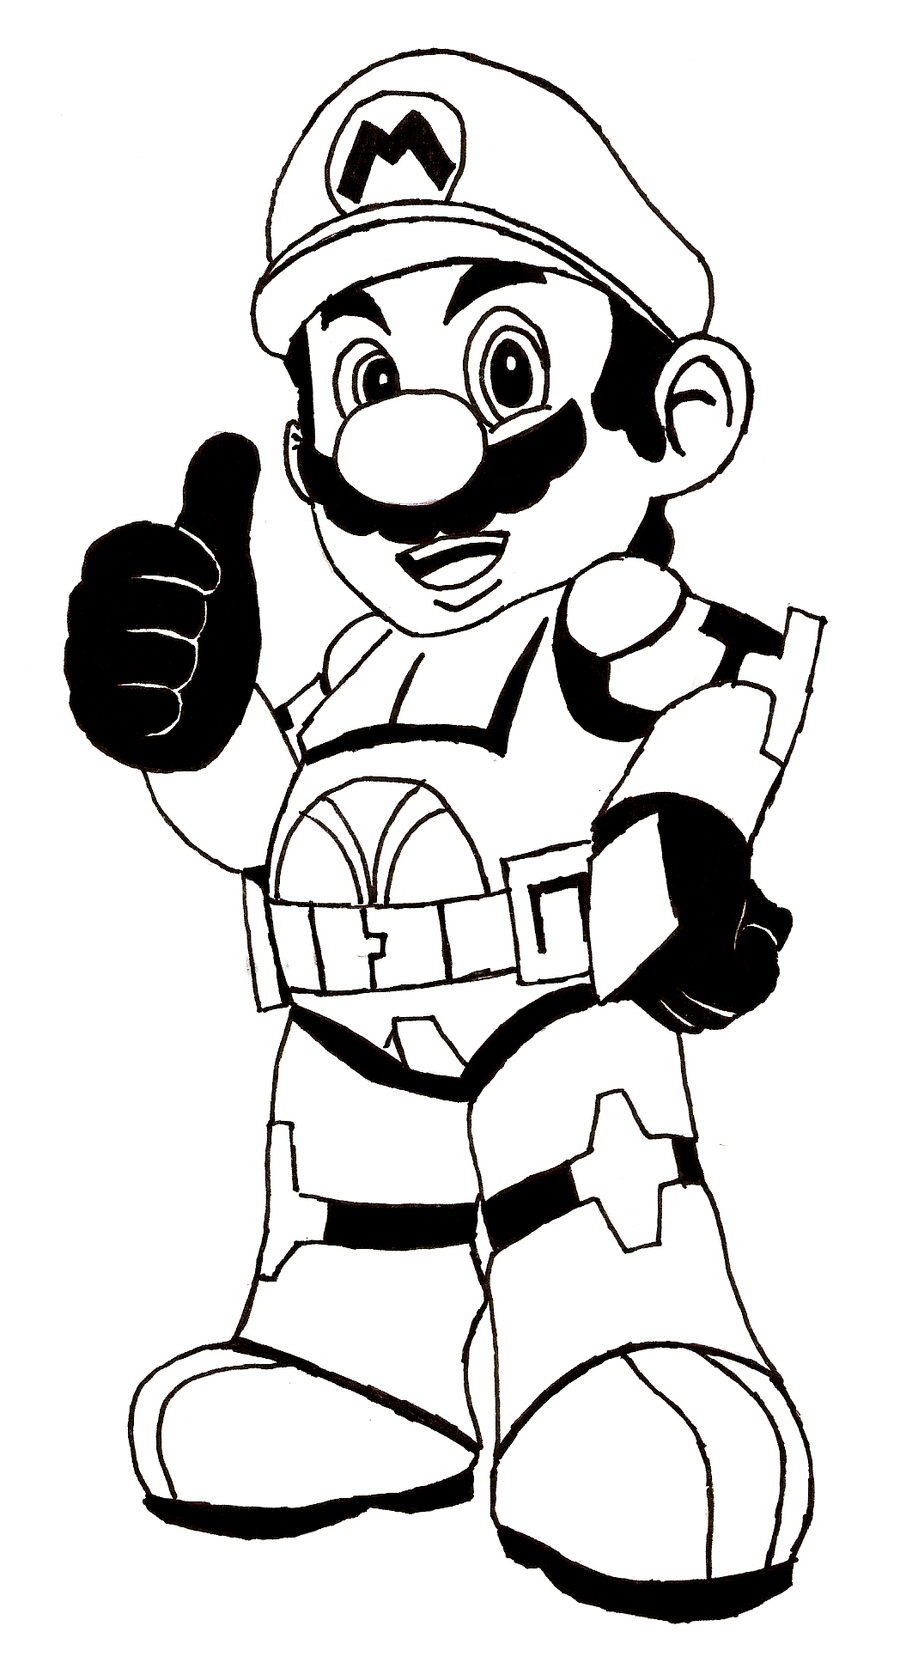 Mario Coloring Pages To Print Best Of Mario Coloring Pages Built Imagination With Coloring